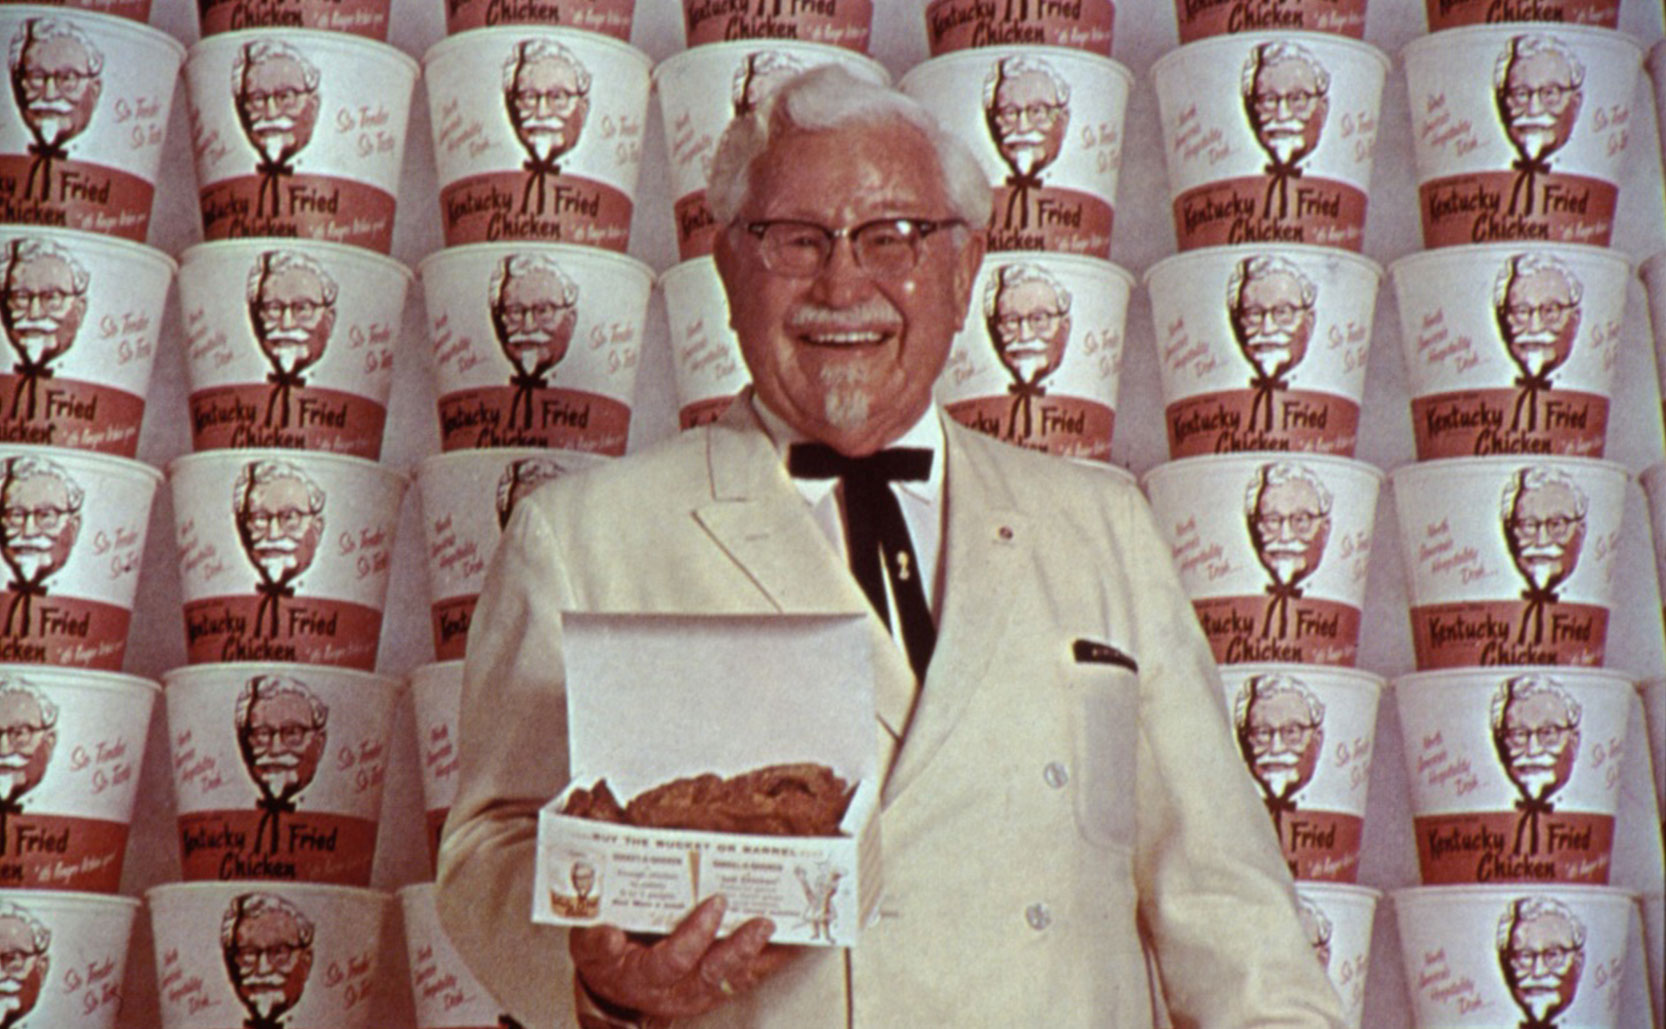 Colonel Sanders … Not A Military Colonel